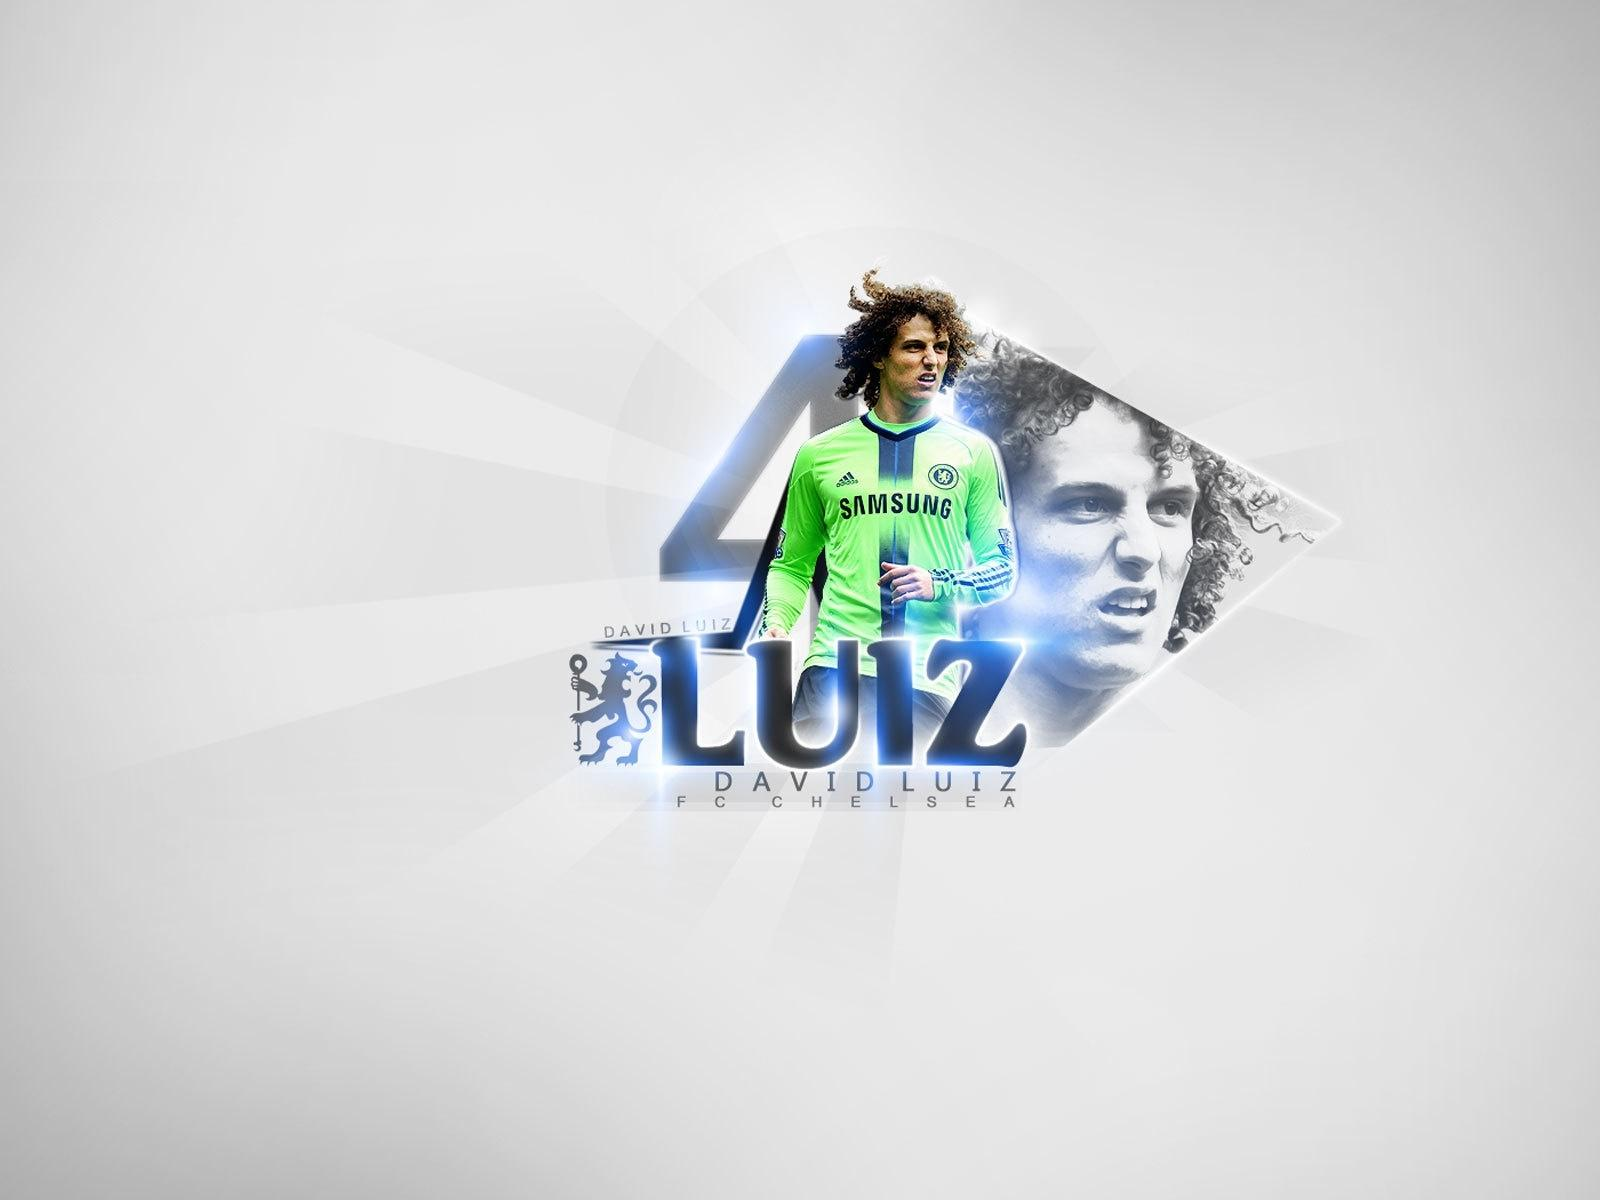 Wallpapers Hd For Mac: David Luiz Chelsea Wallpaper HD 2013